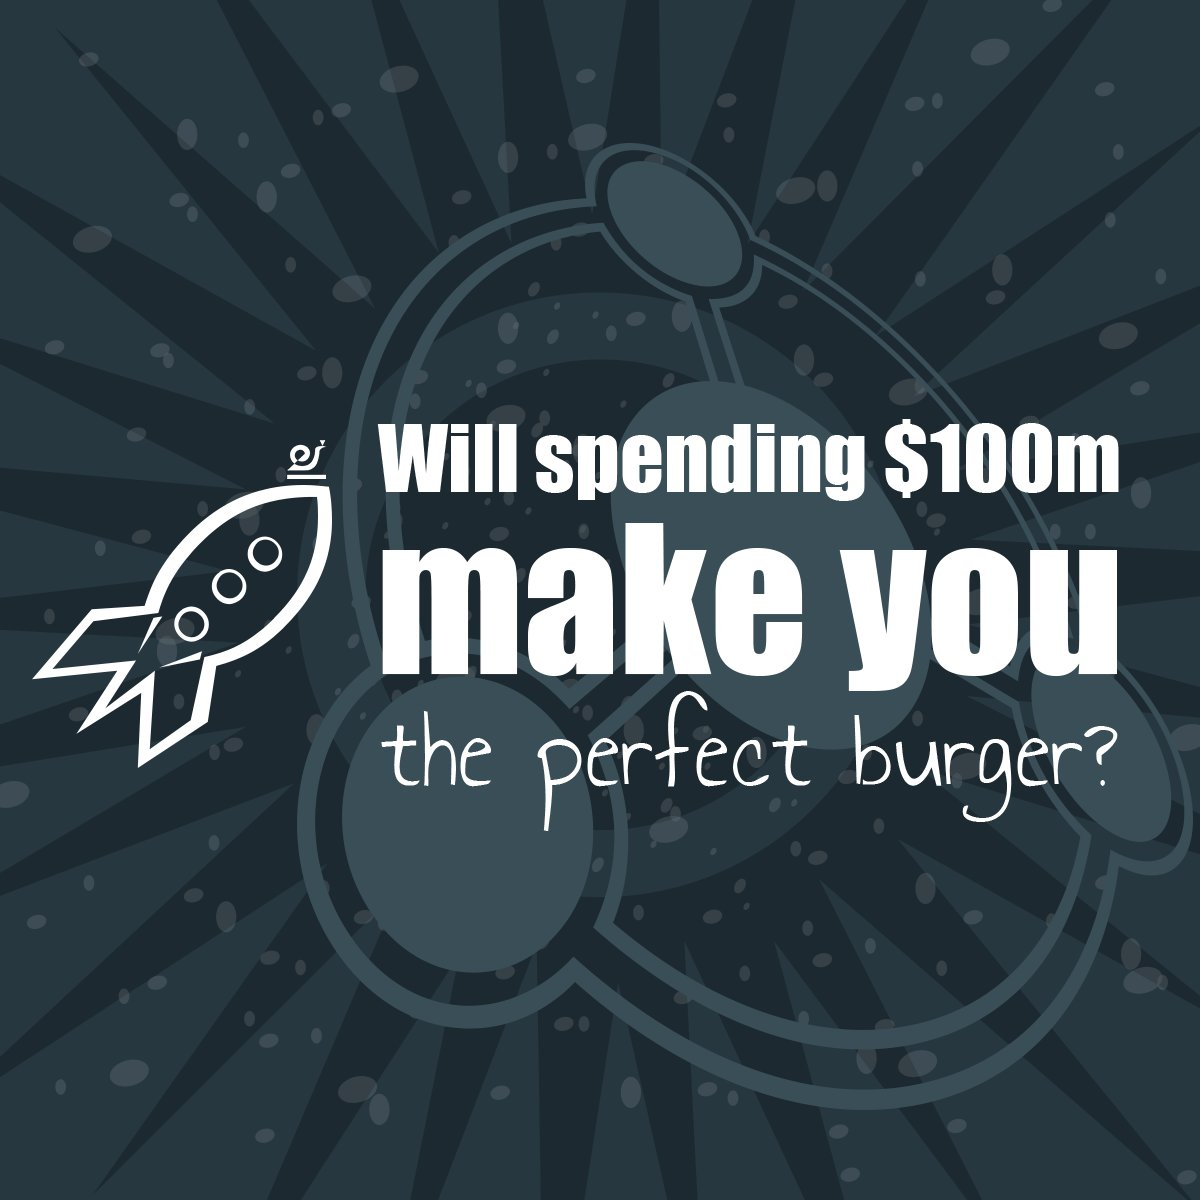 $100m to make you the perfect burger.